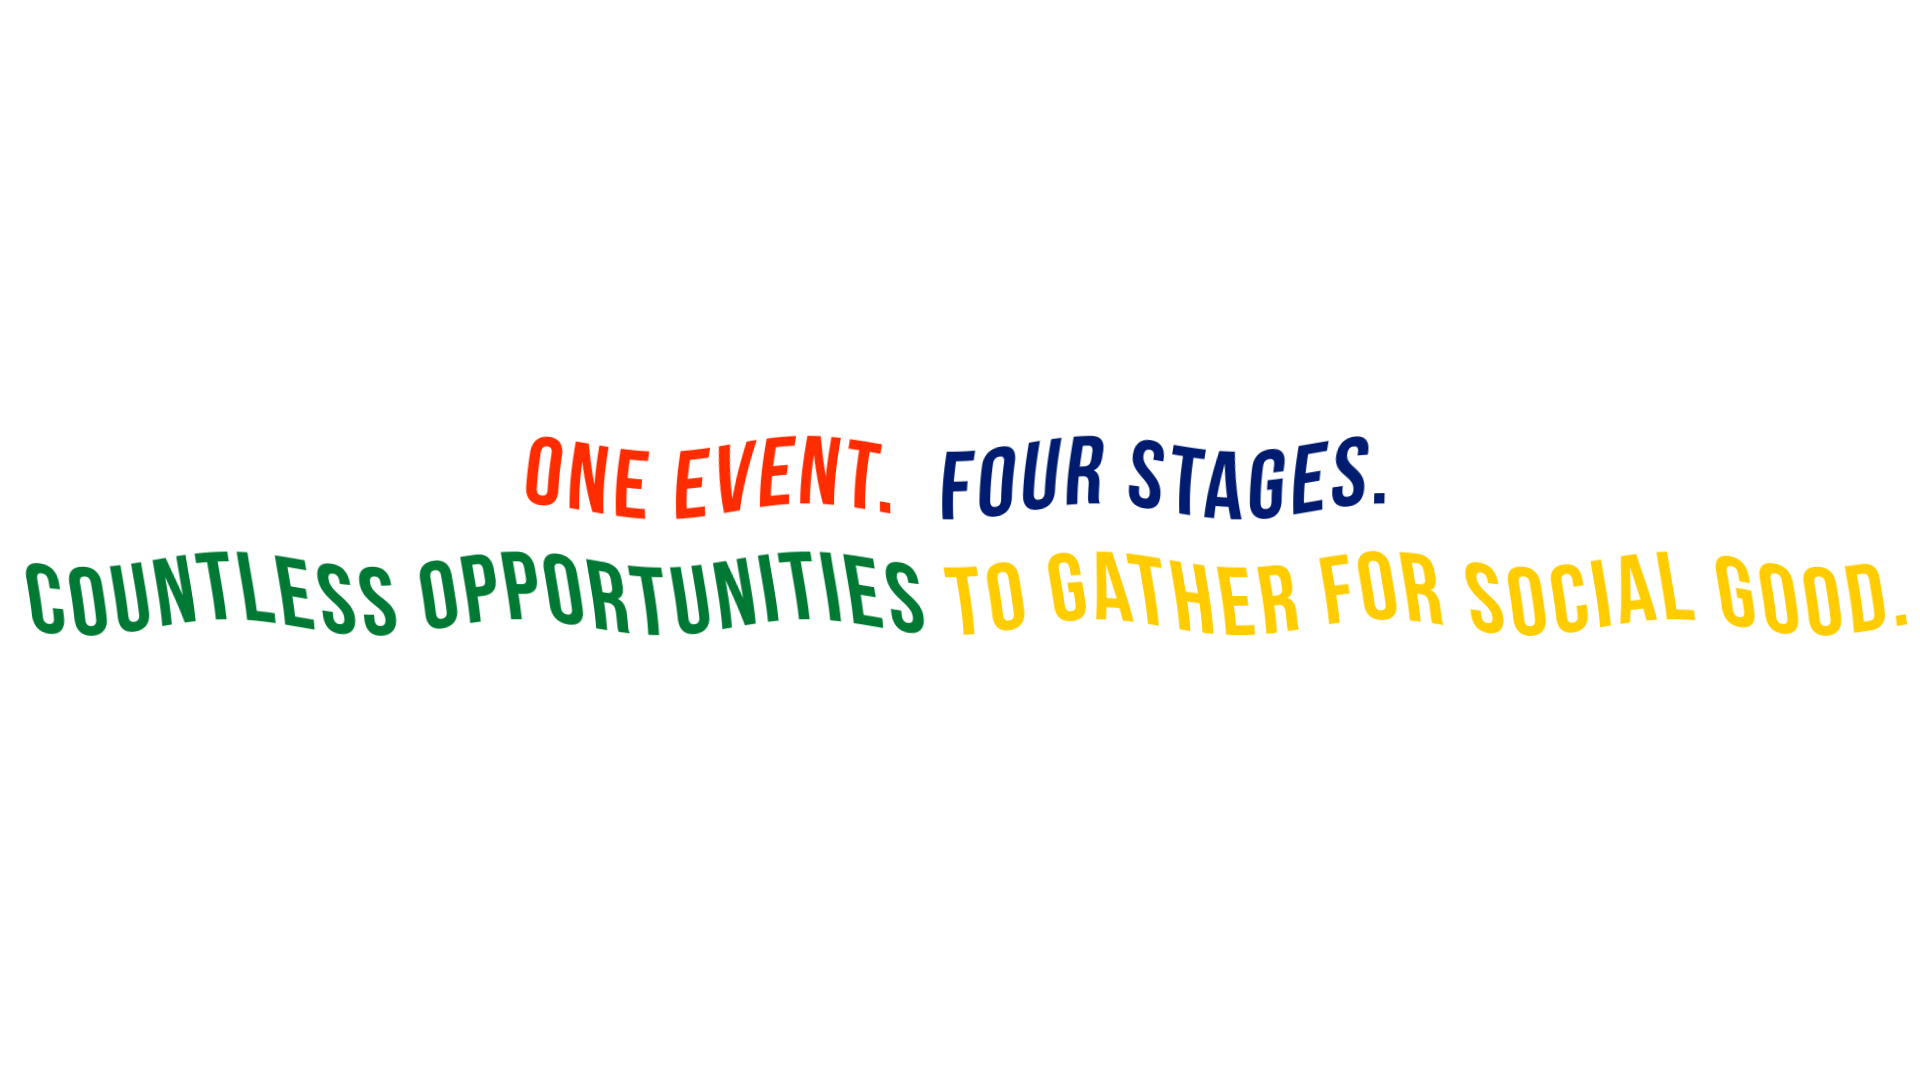 oneevent.png